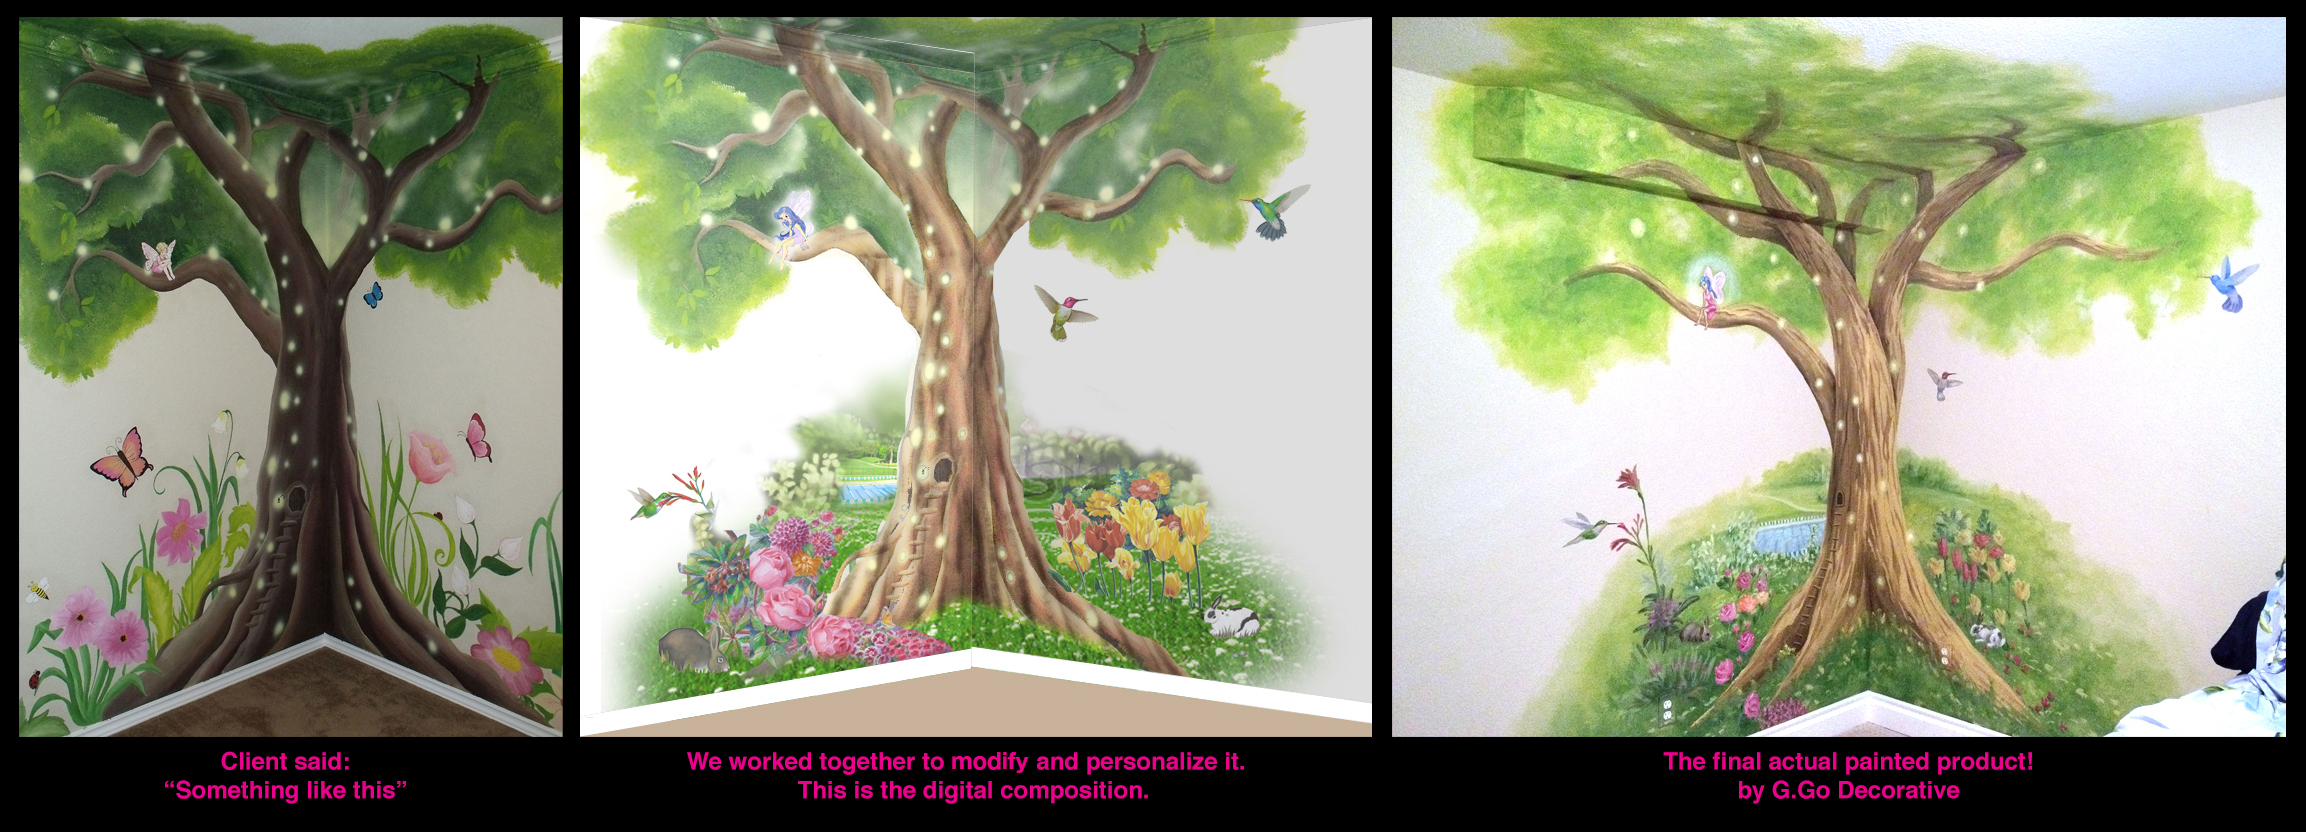 Fairy tree mural design g go decorative g go decorative for Fairy garden mural